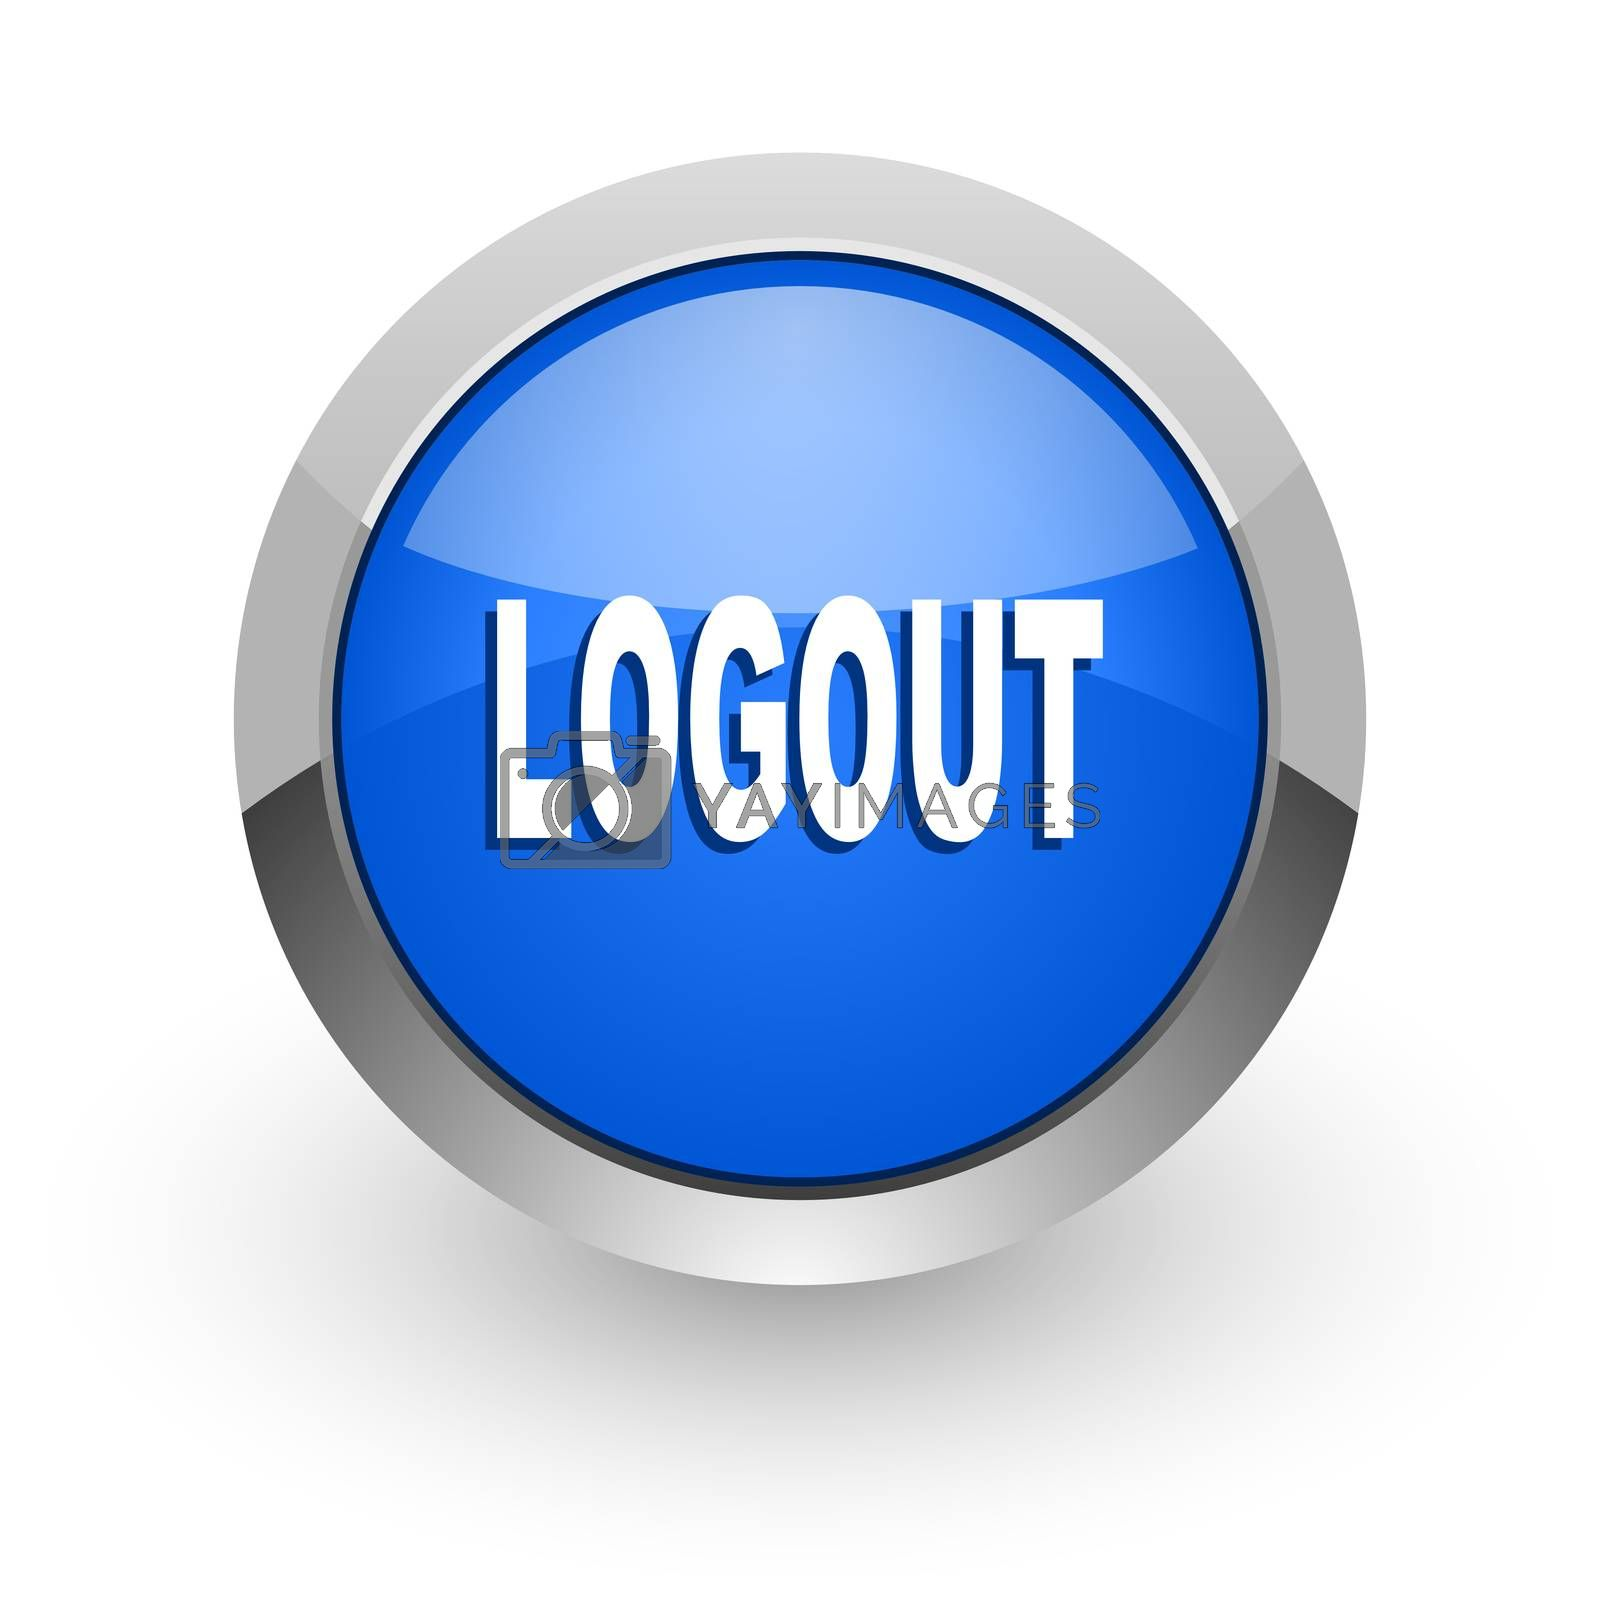 Royalty free image of logout blue glossy web icon by alexwhite